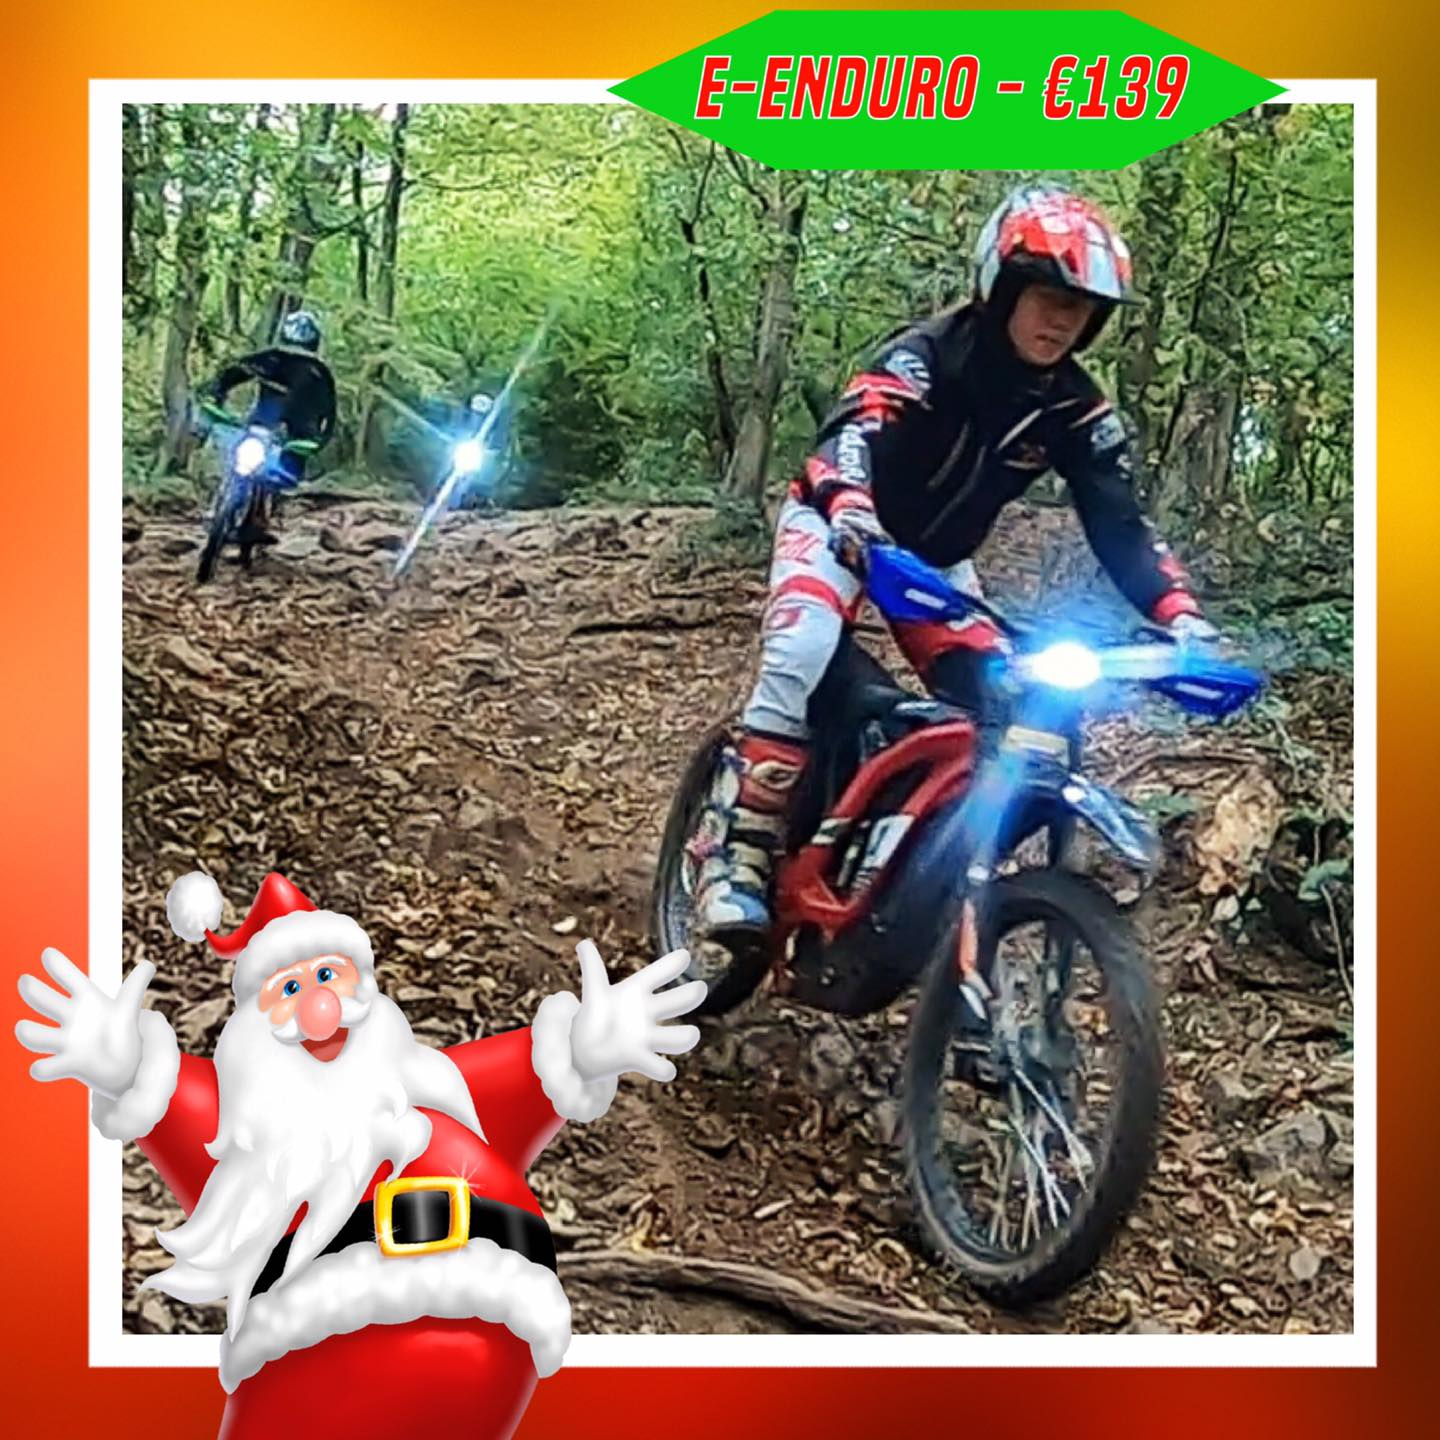 Kerst-initiaties Bilstain Endurofun 36 Surron